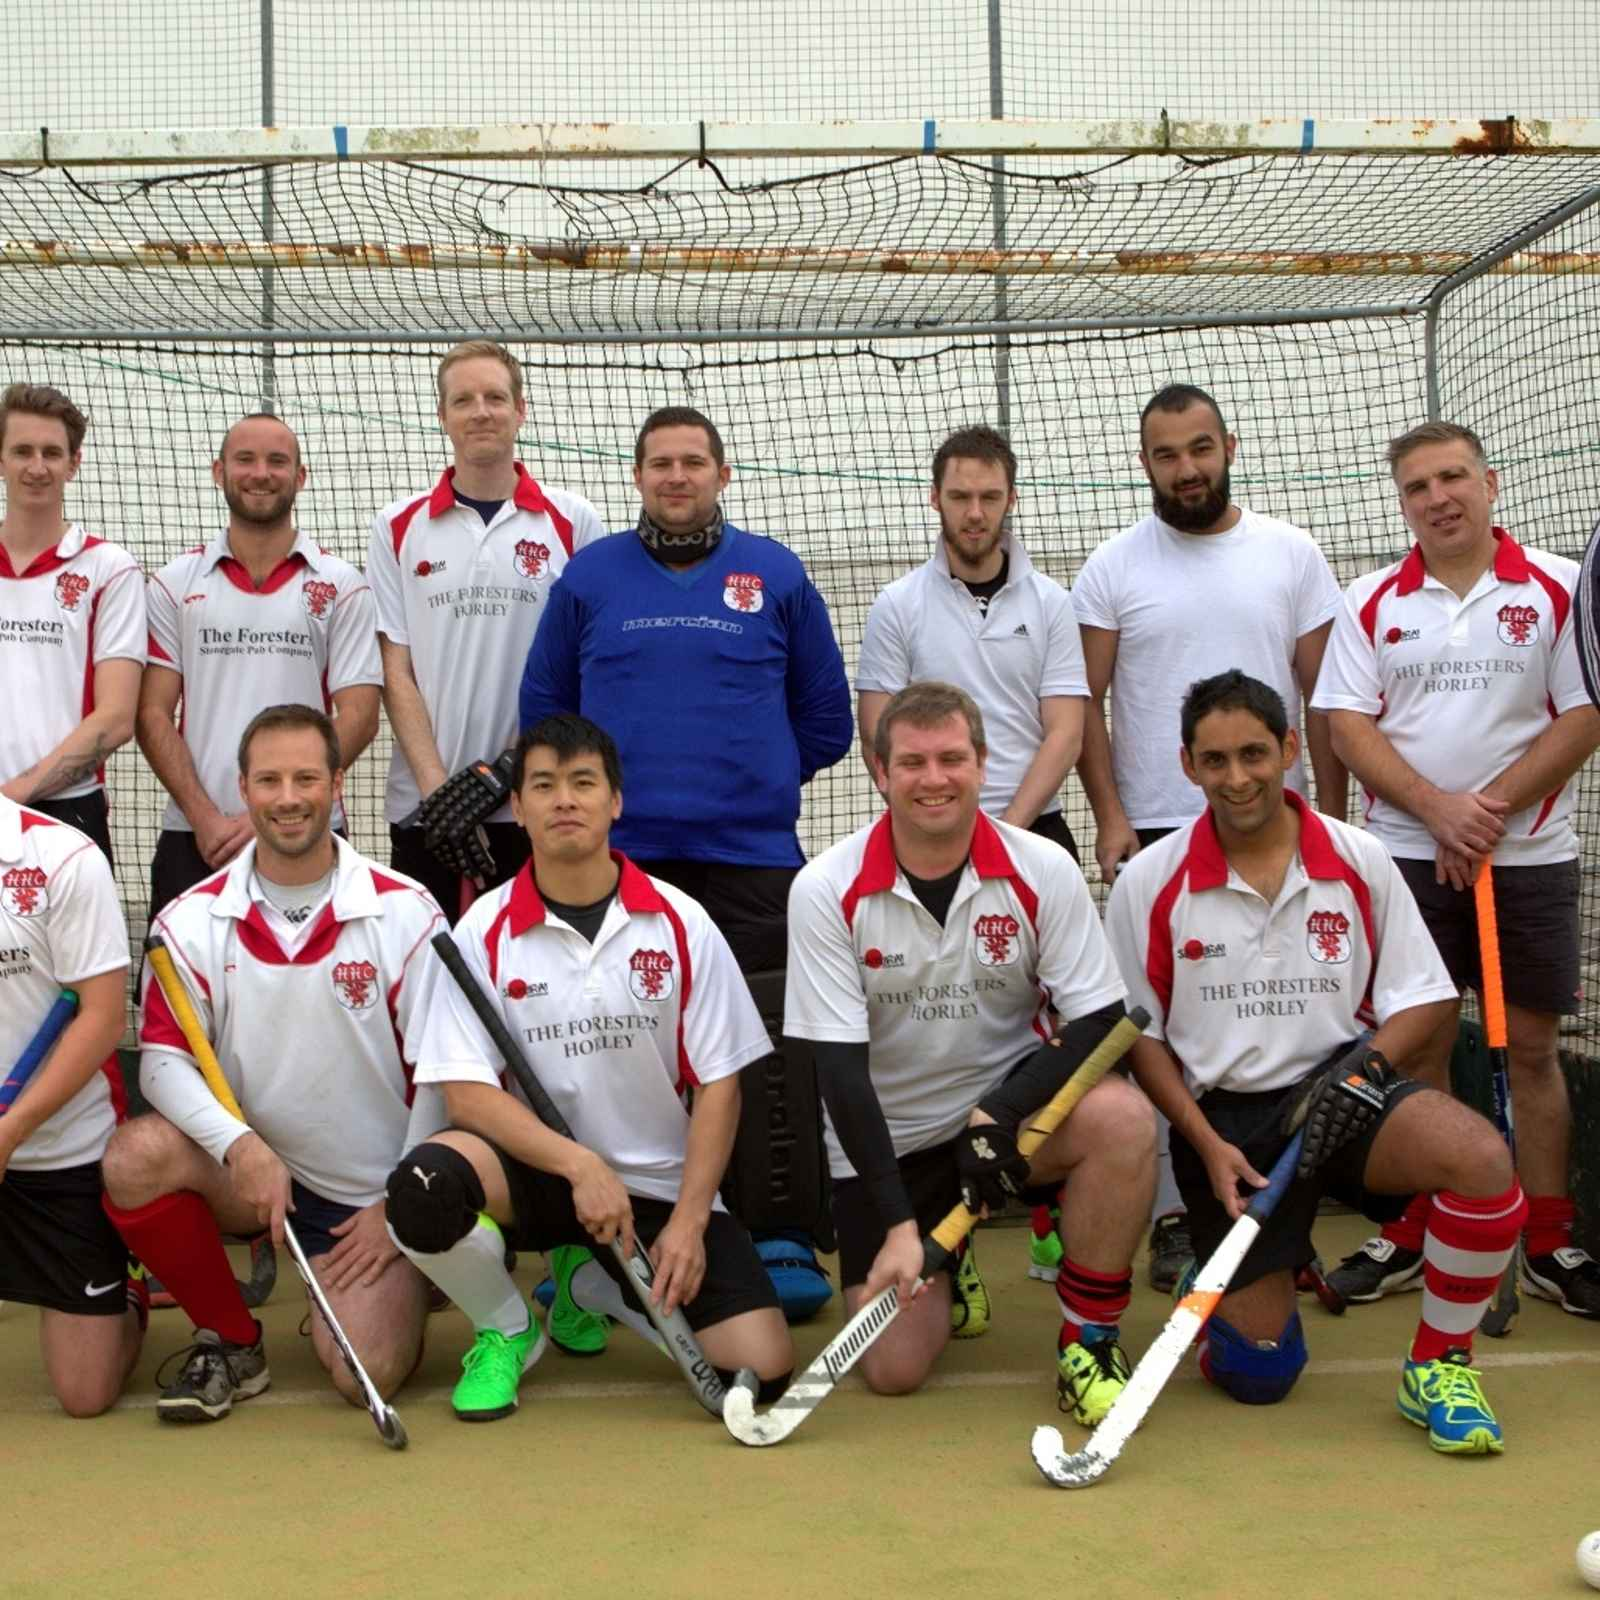 M1s lose out to Barnes M4s